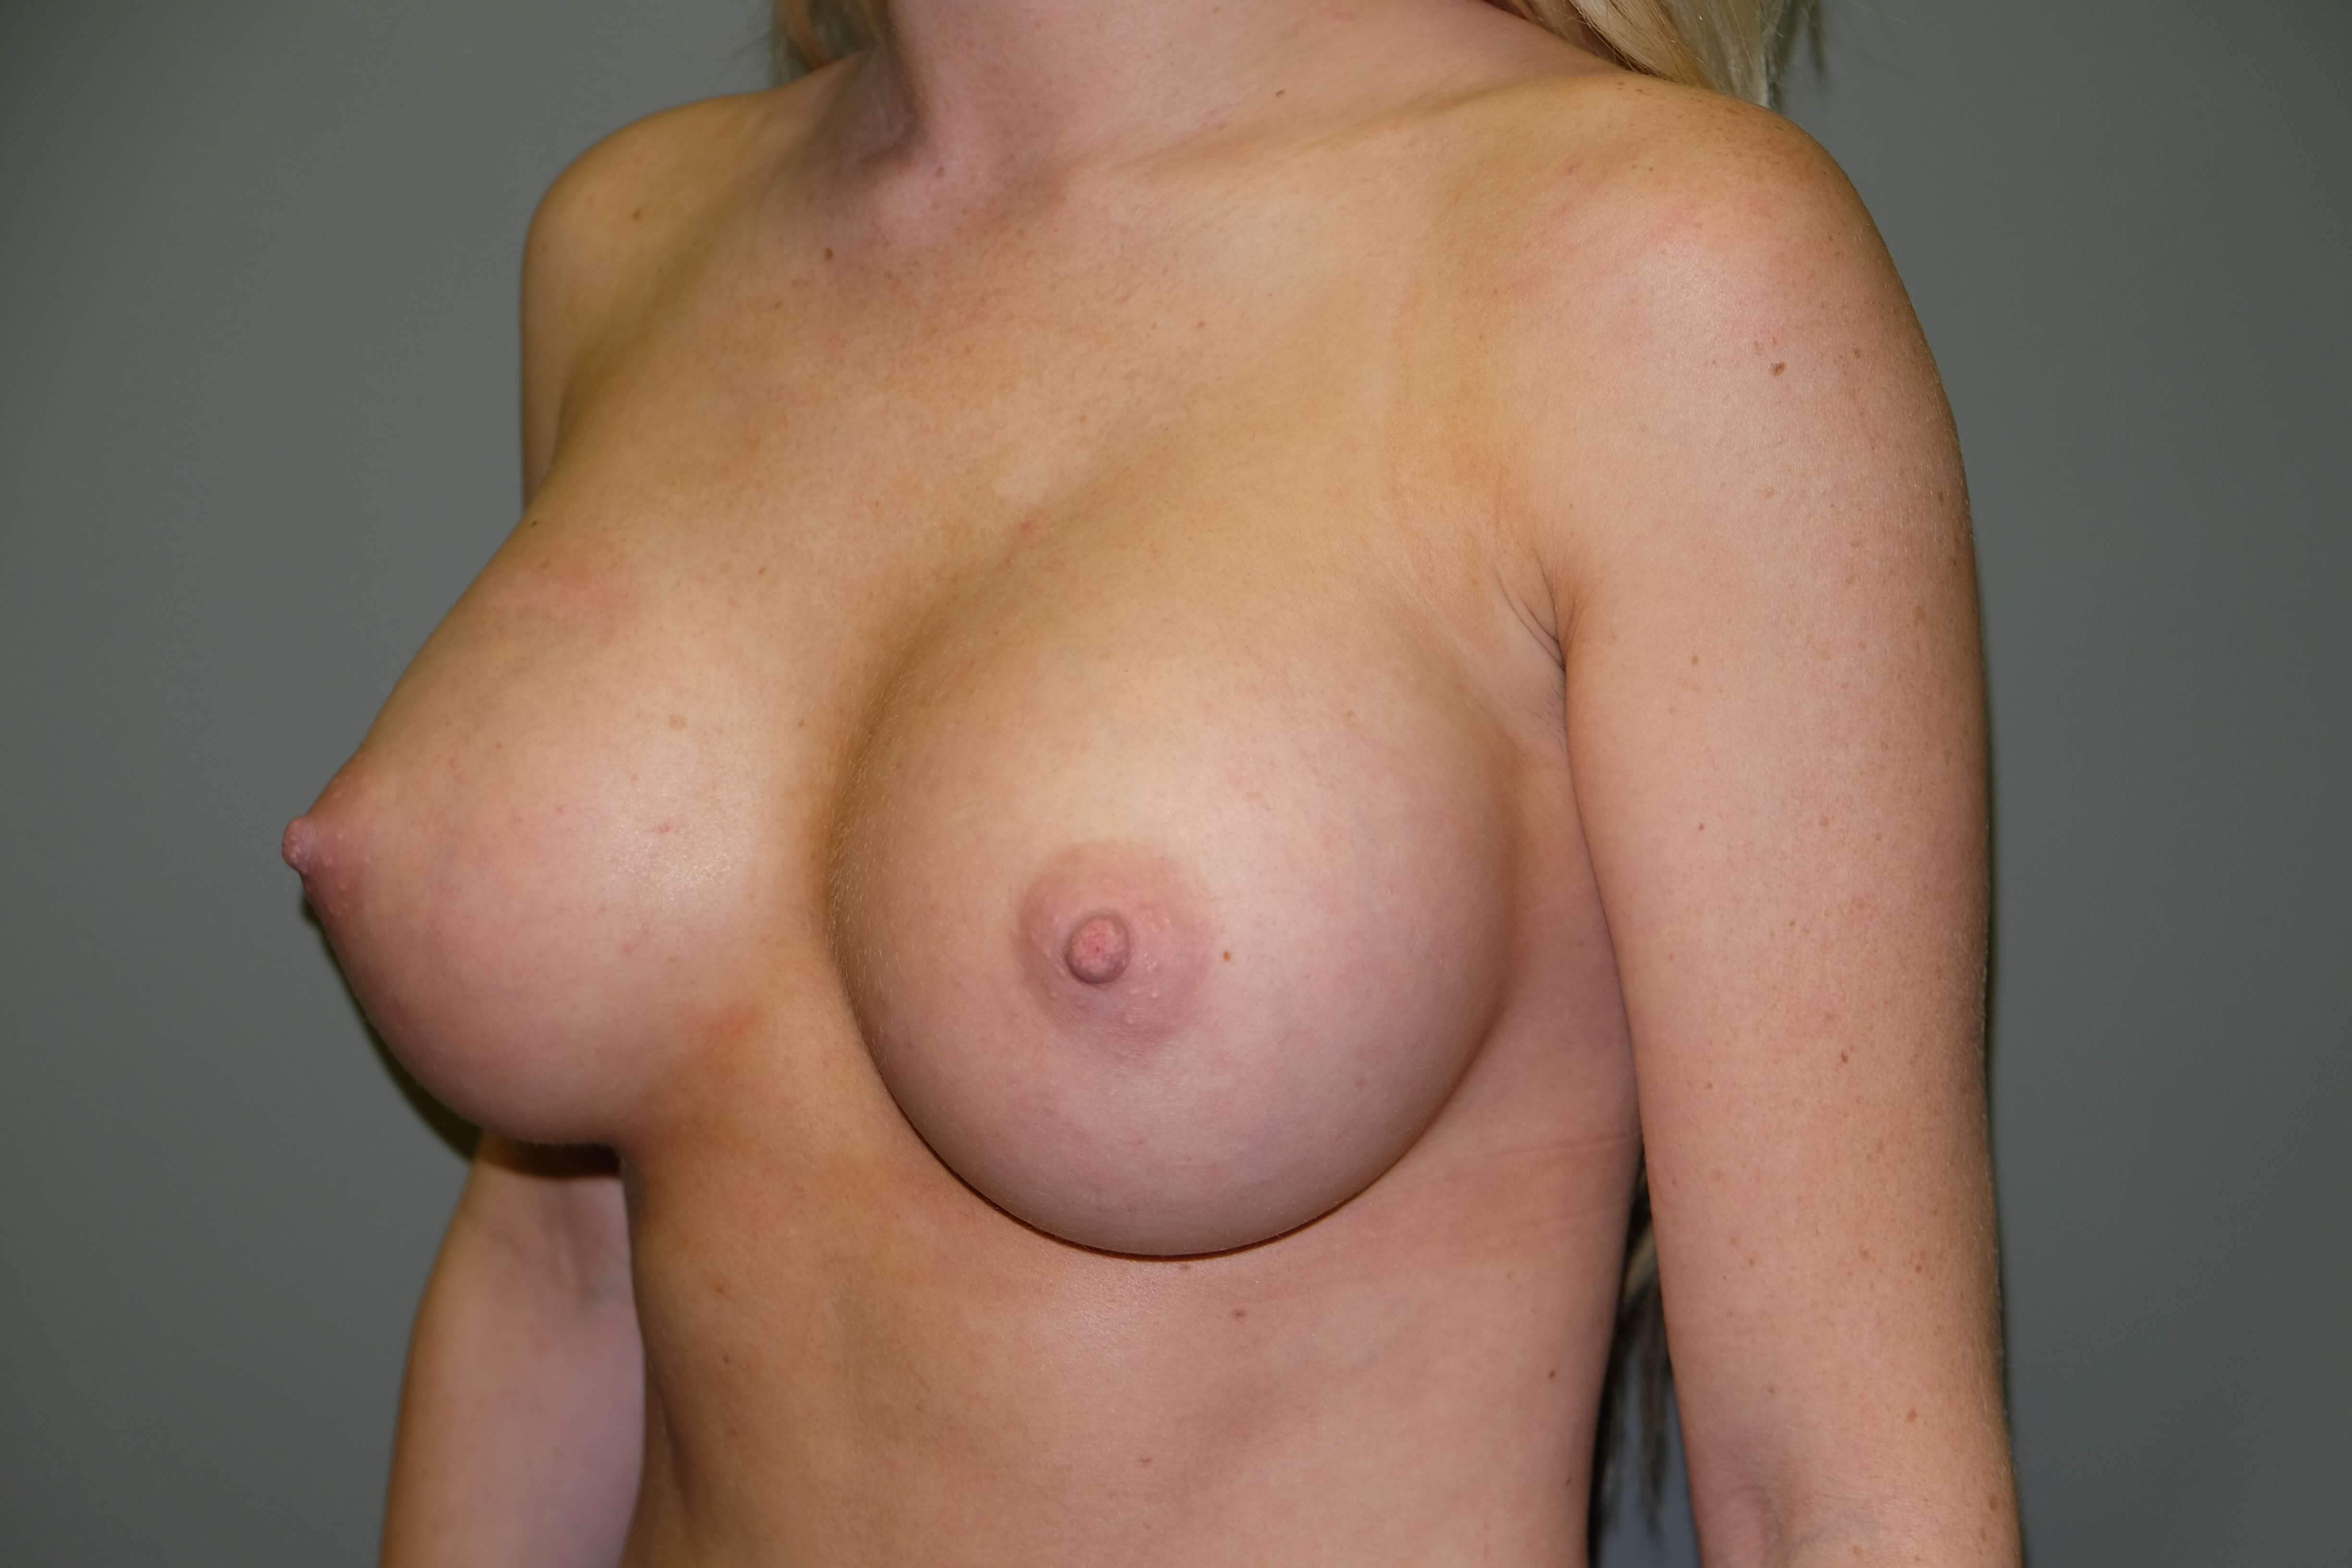 Breast Augmentation in 22 yo After